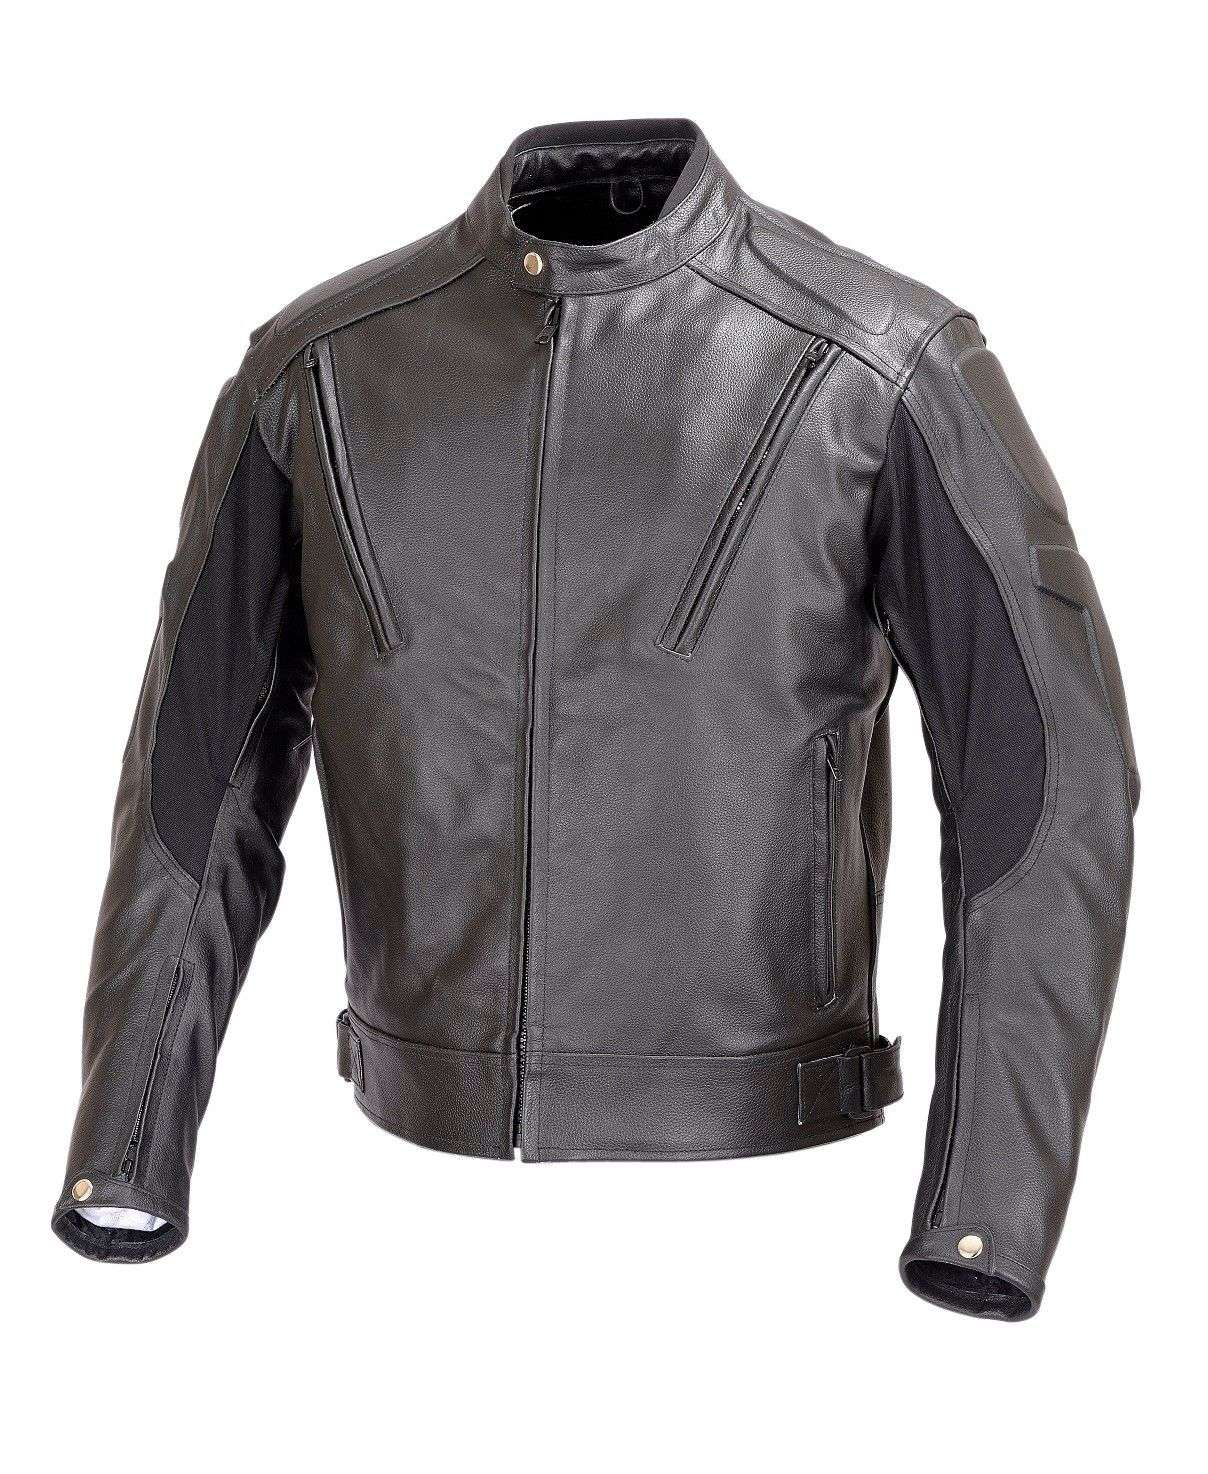 Men-Motorcycle-Vented-Leather-Jacket-Armor-Black-M